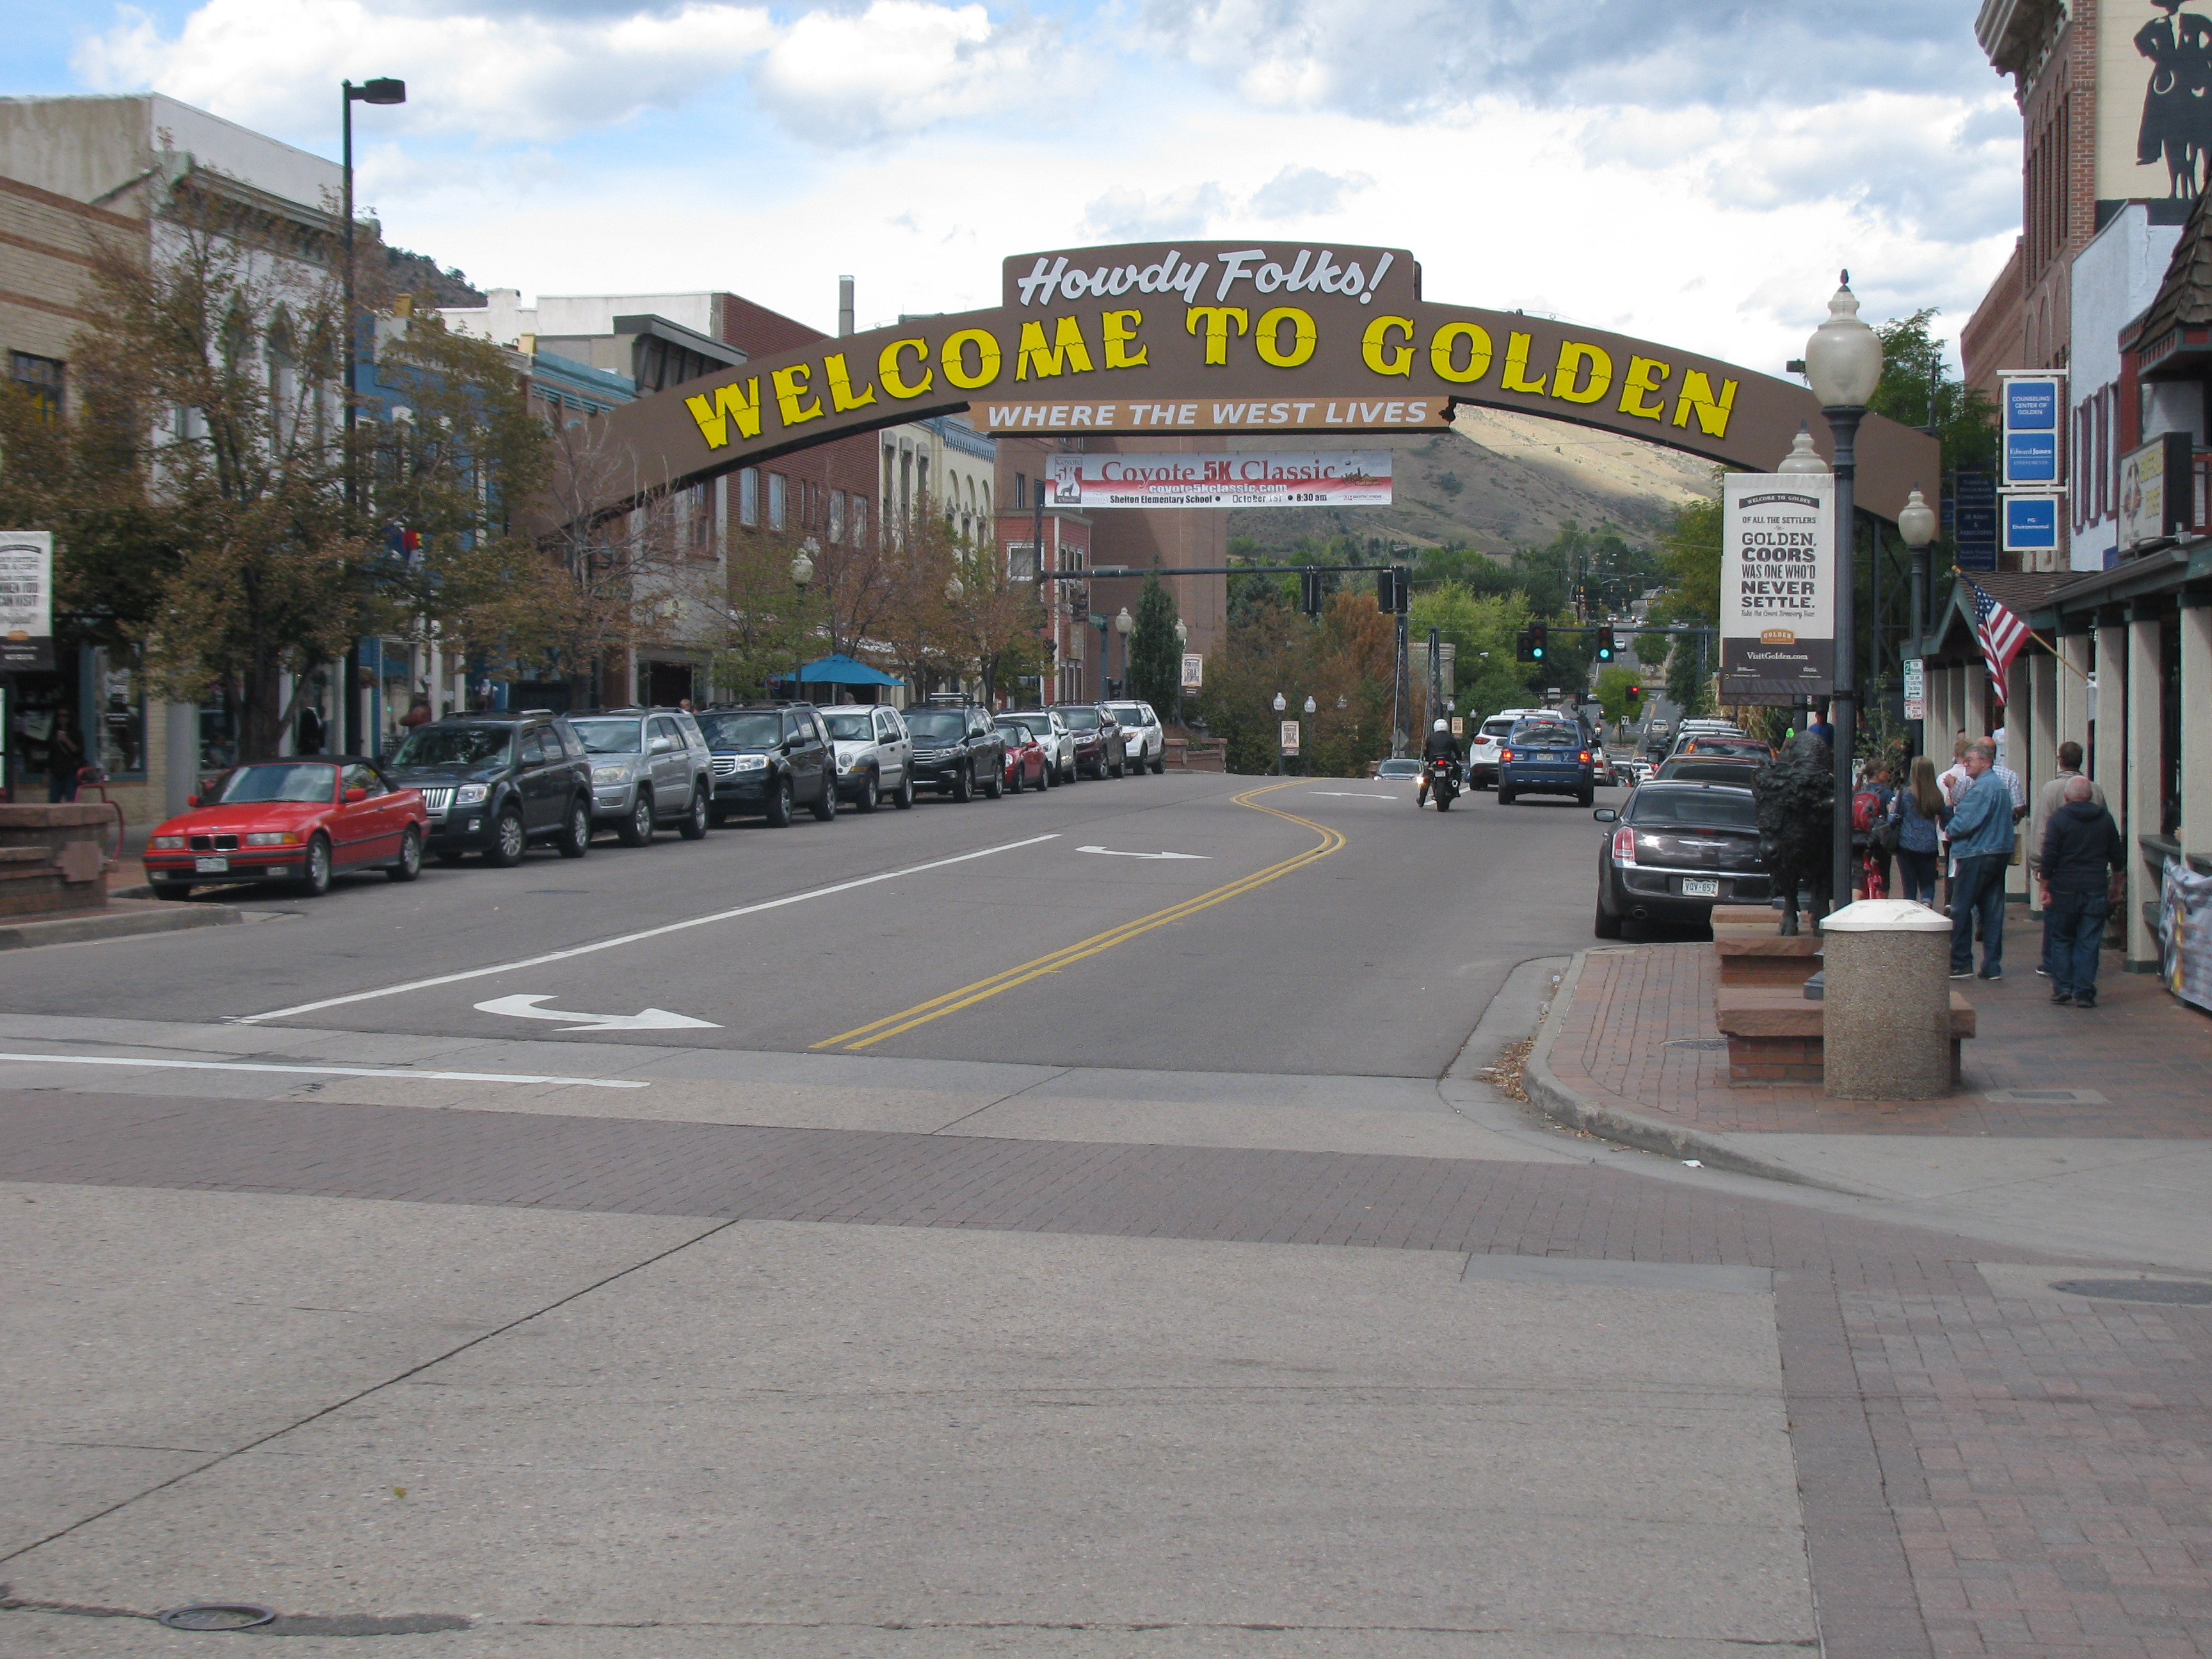 Golden Colorado Wikipedia